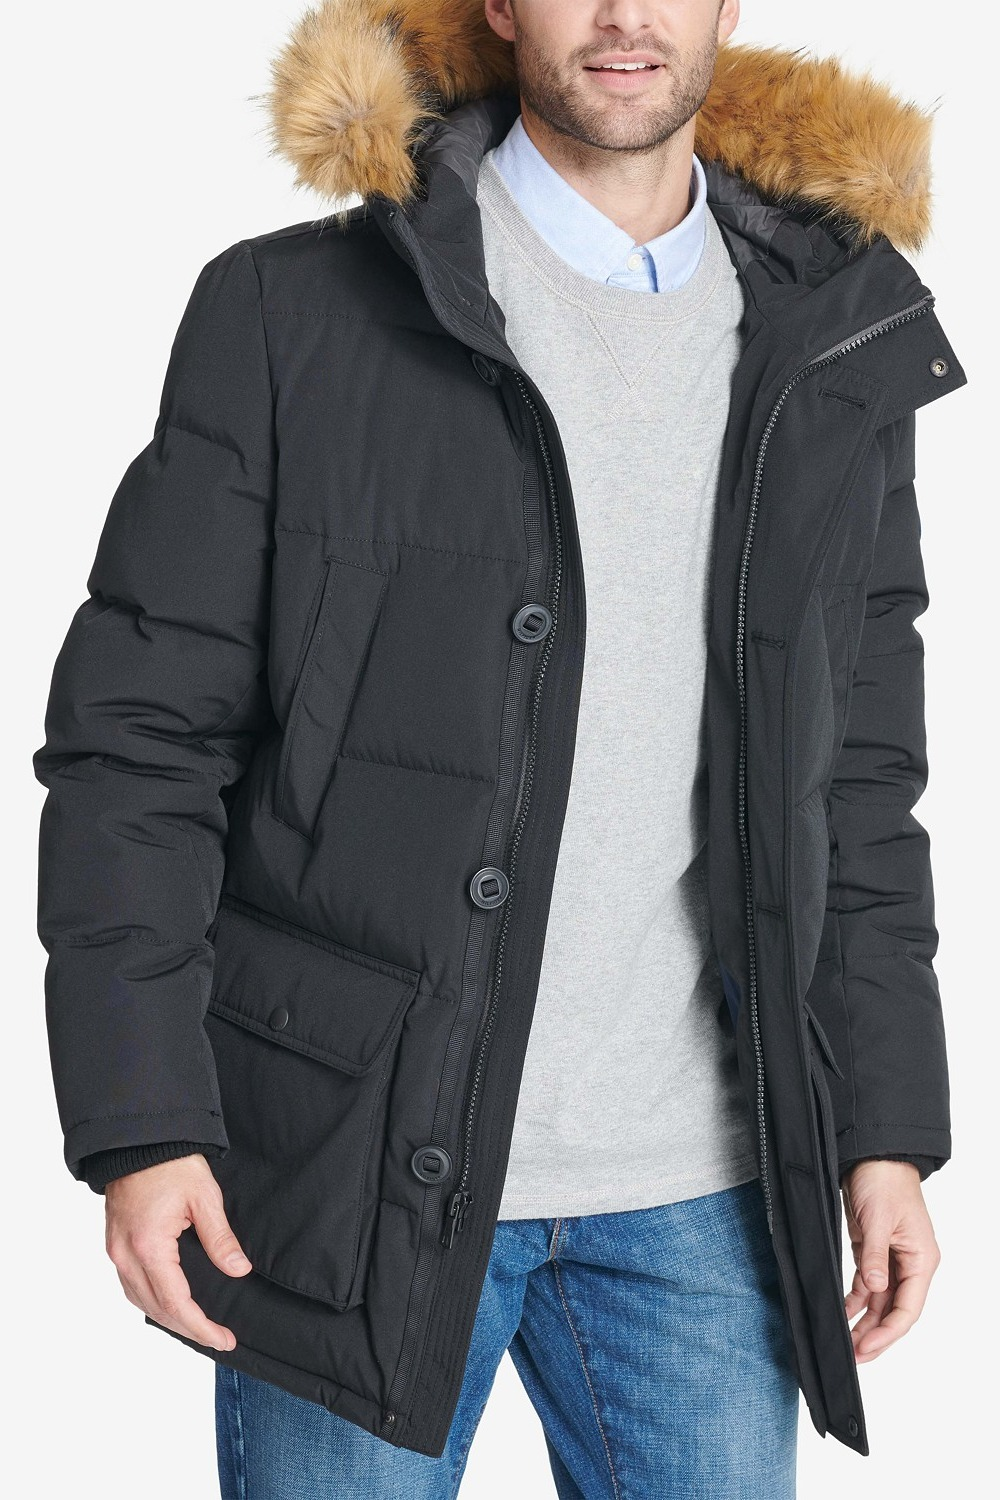 822f582d The 11 Best Parkas on Amazon according to reviews